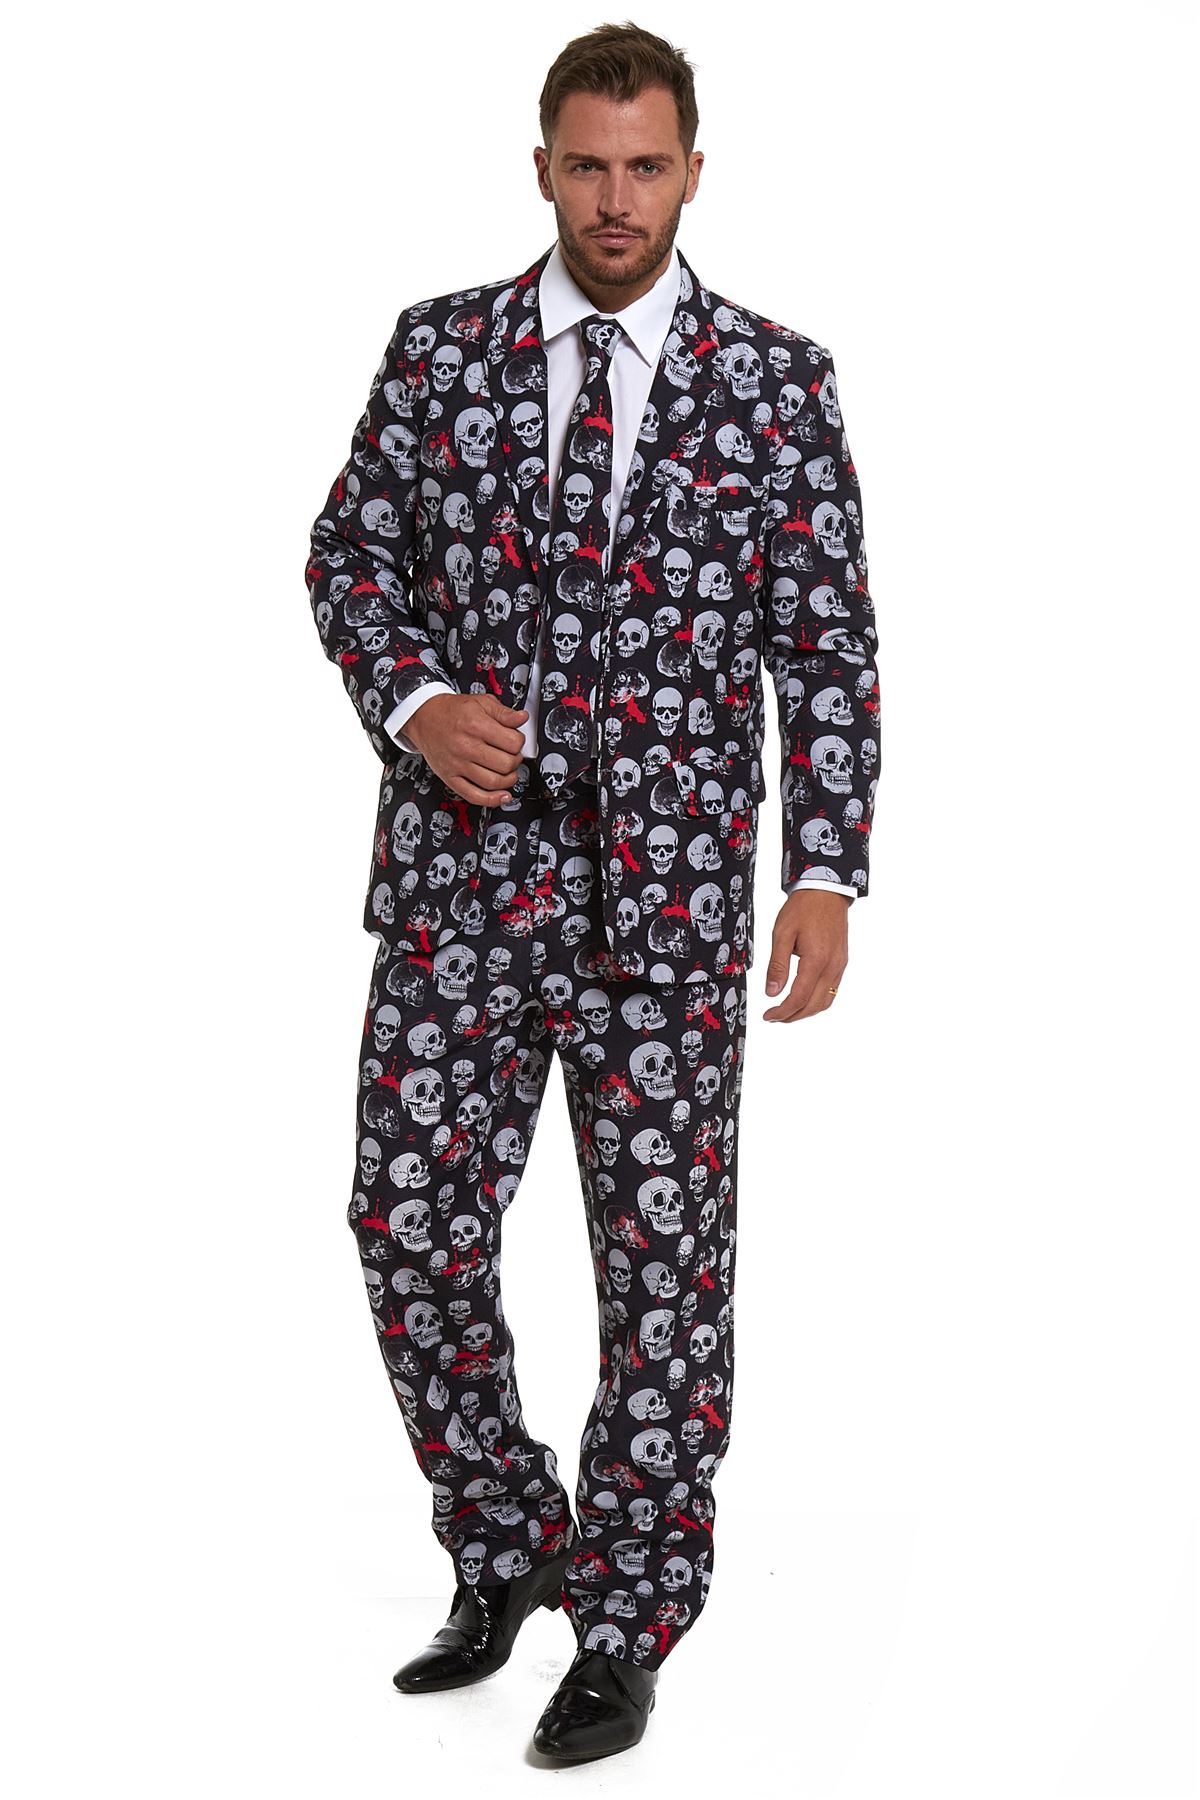 new mens stag stand out stag do suits party funny fancy. Black Bedroom Furniture Sets. Home Design Ideas